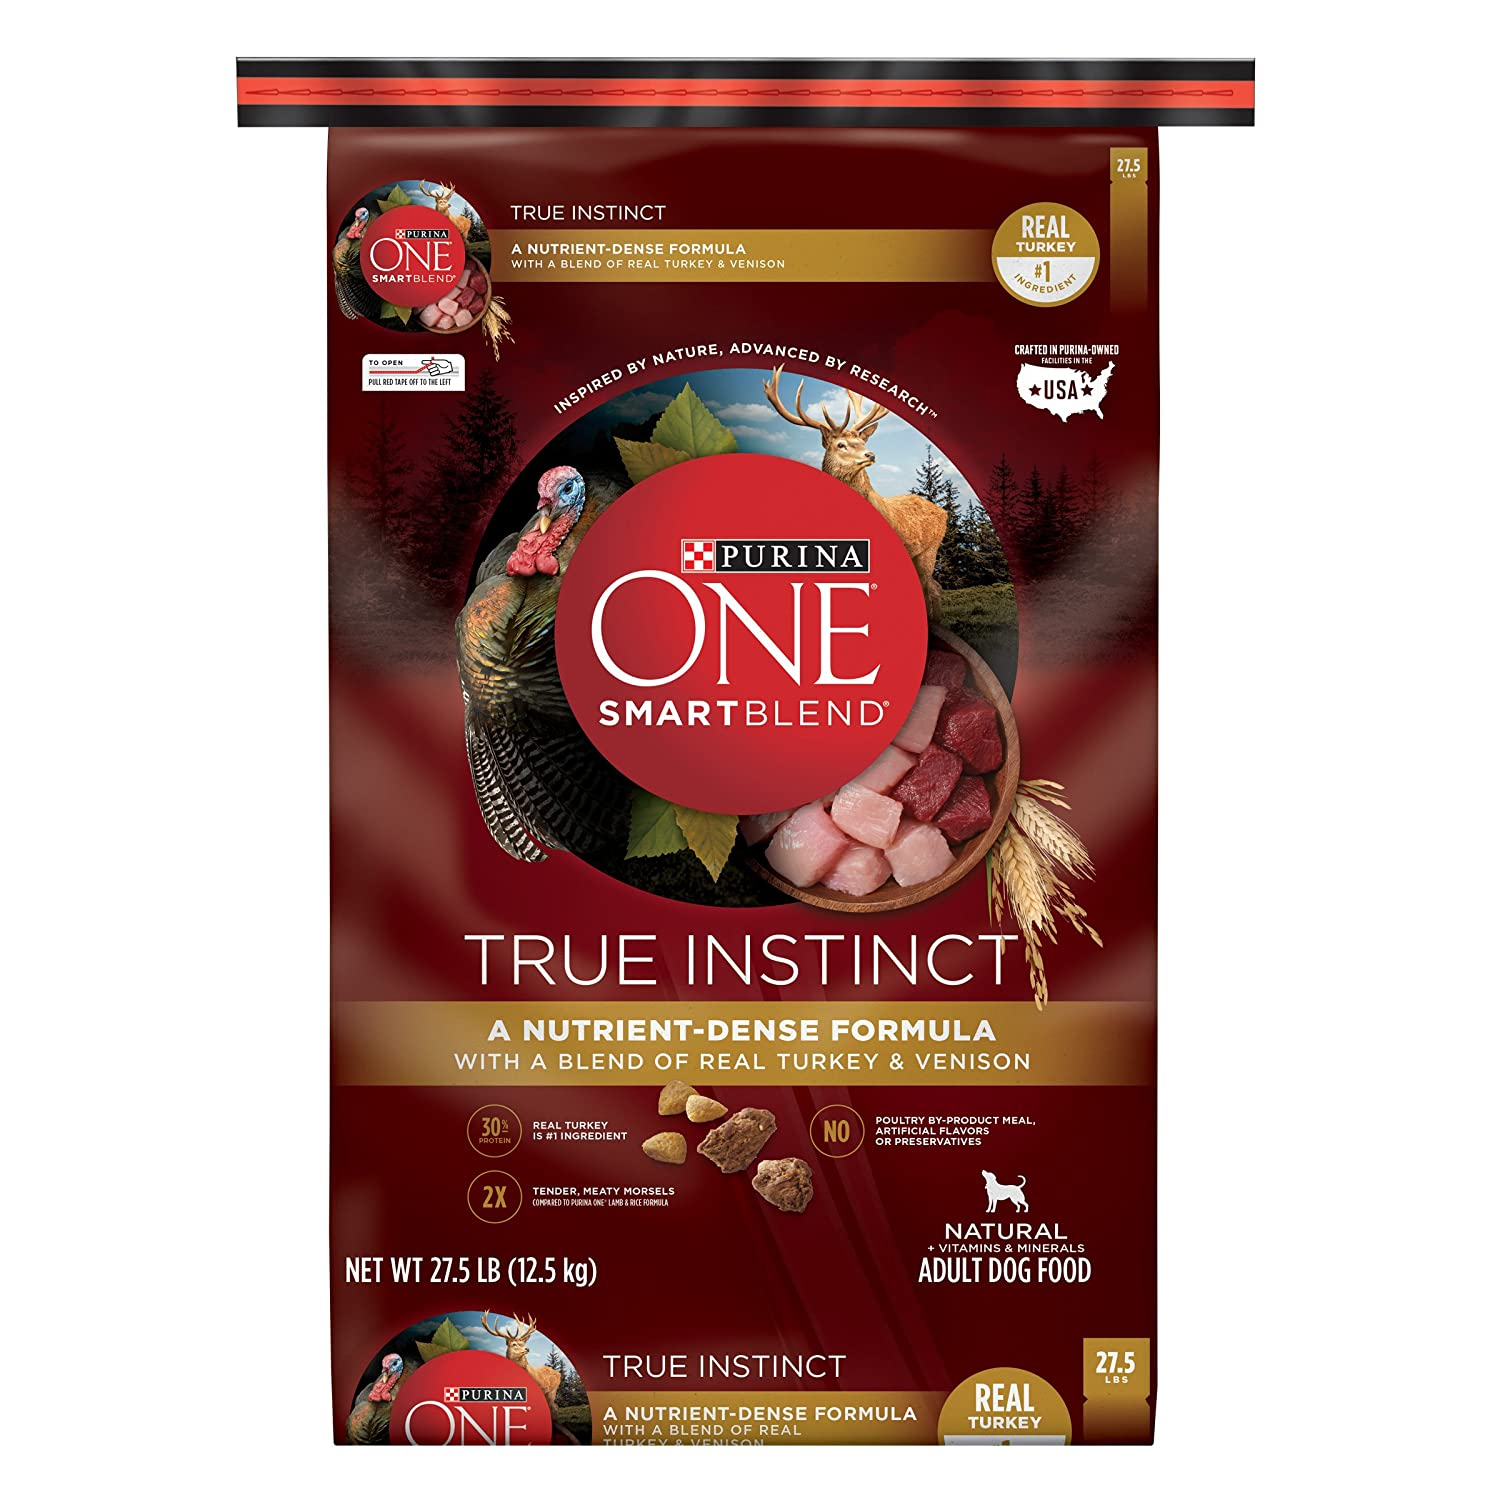 Purina Grain Free Dog Food